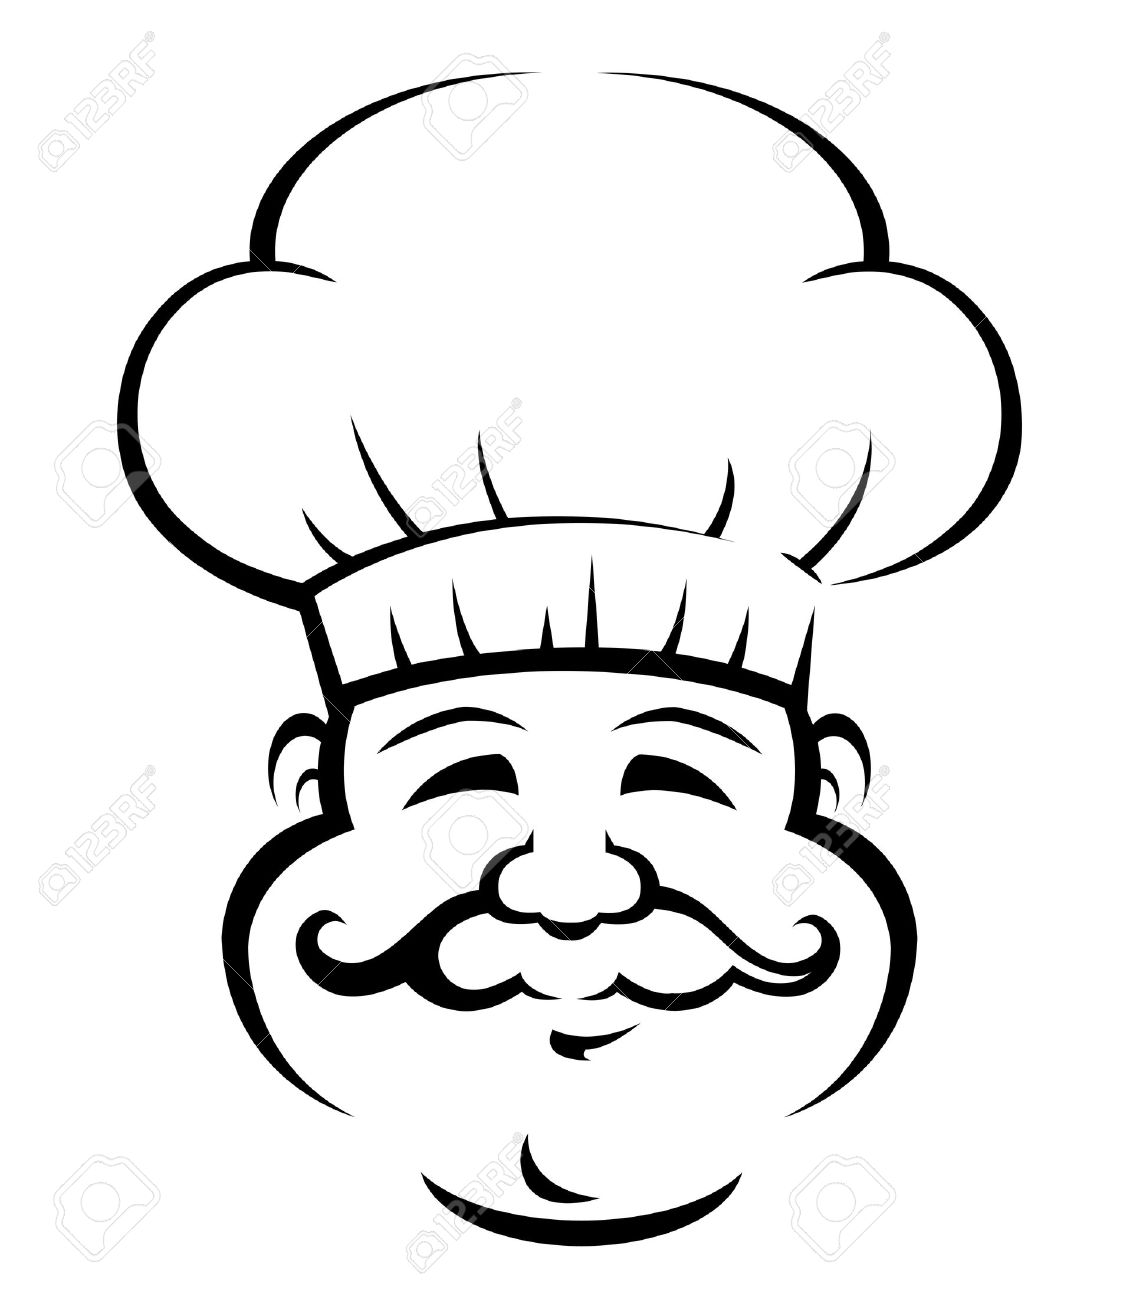 1123x1300 Black And White Doodle Sketch Of A Smiling Chef Or Baker